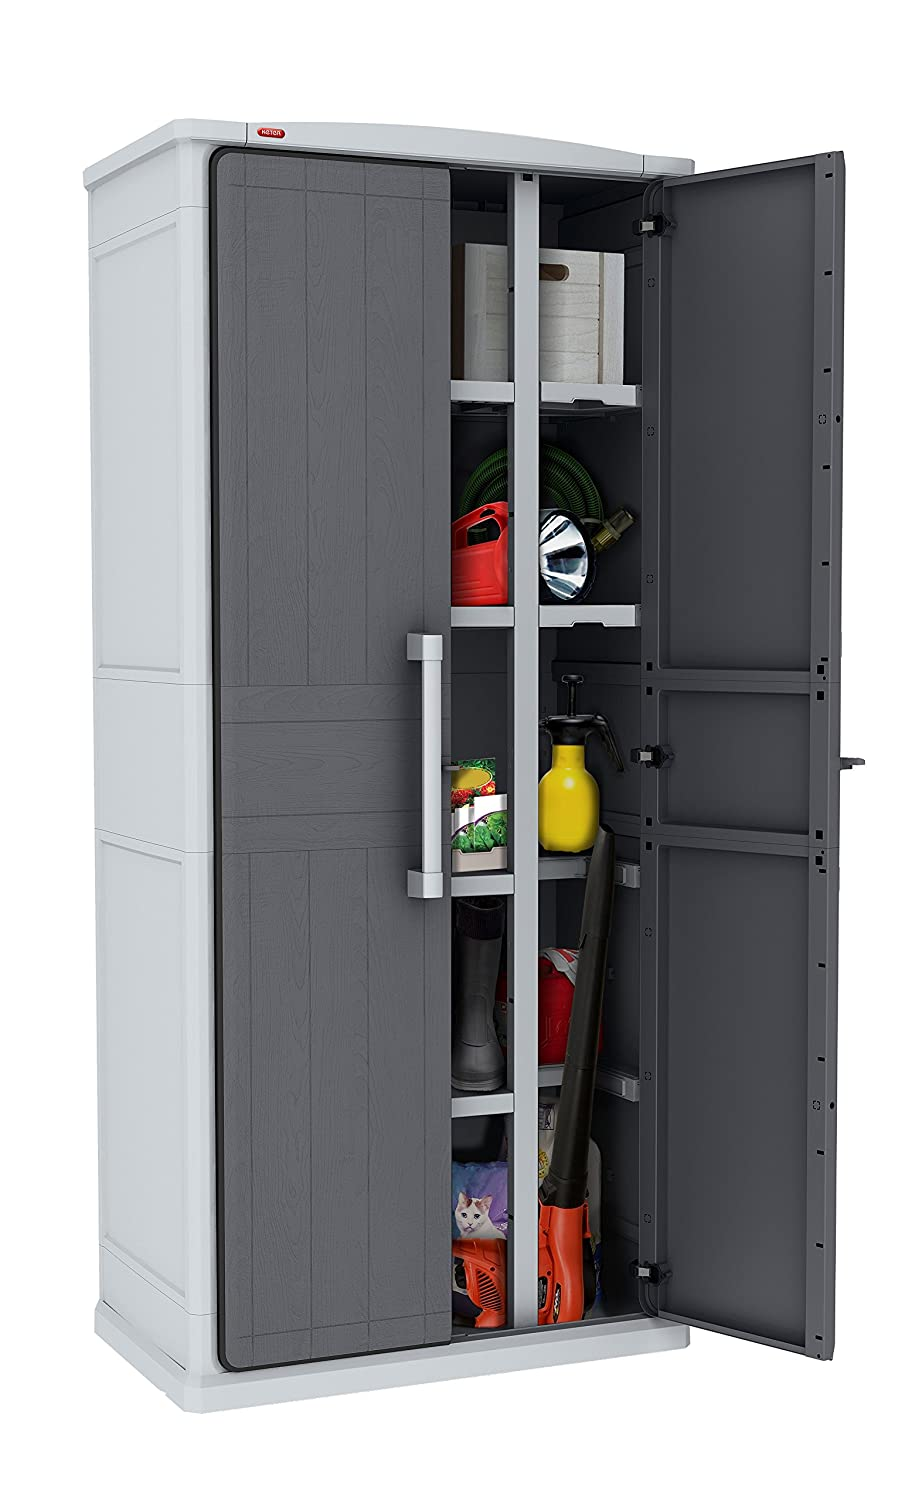 Keter Tall Grey Storage Unit Optima Wonder Cabinet: Amazon.co.uk ...